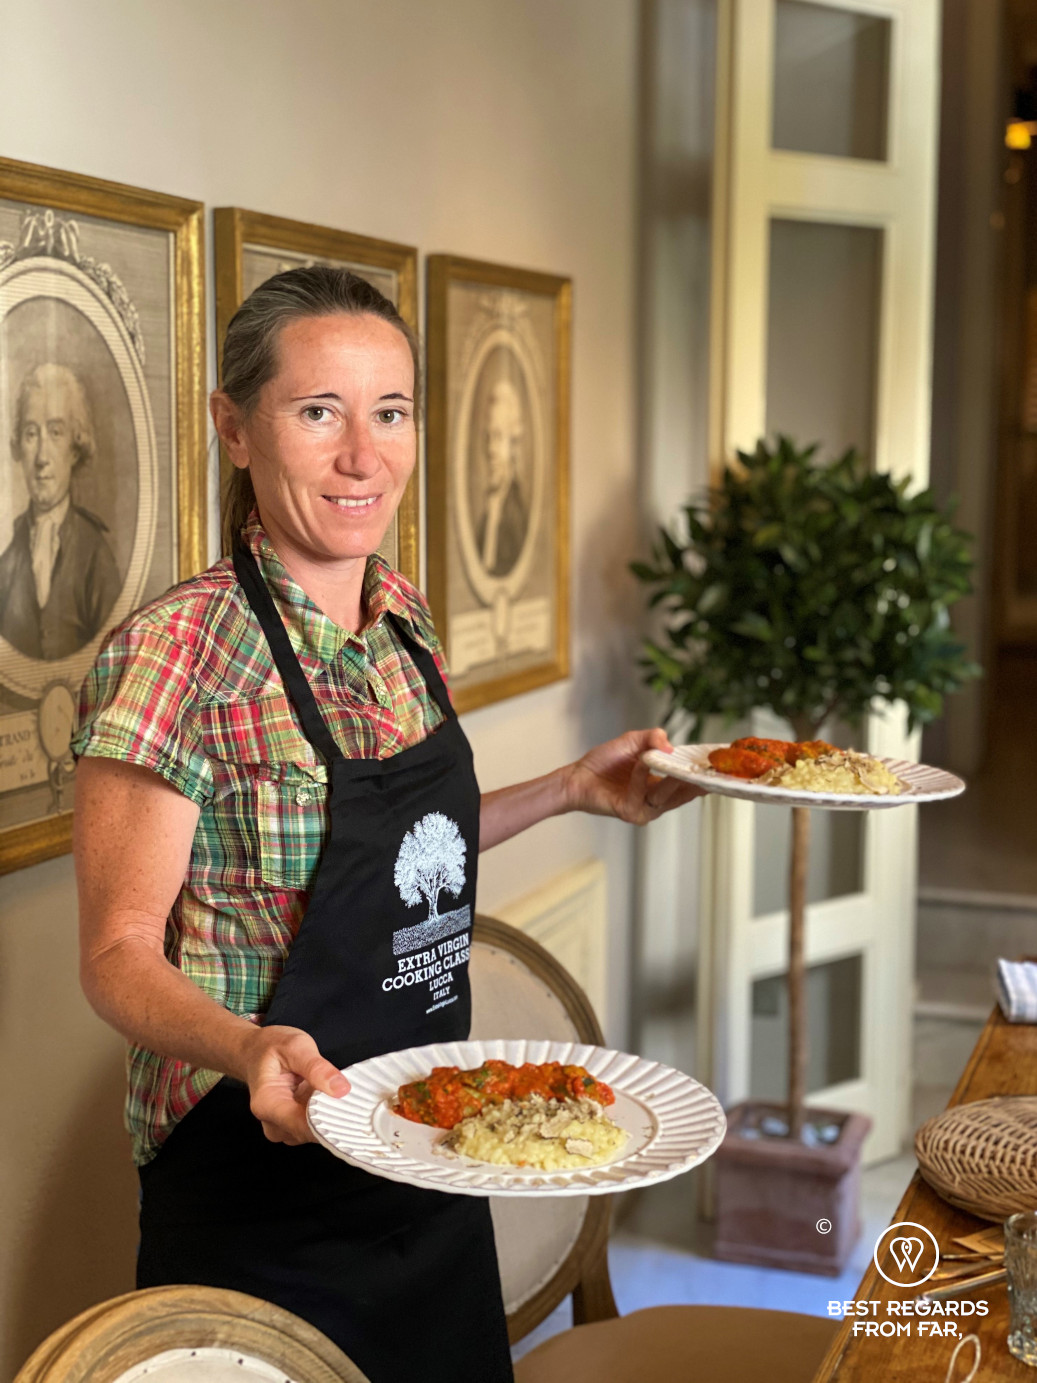 Woman with black apron serving two plates of food in Lucca